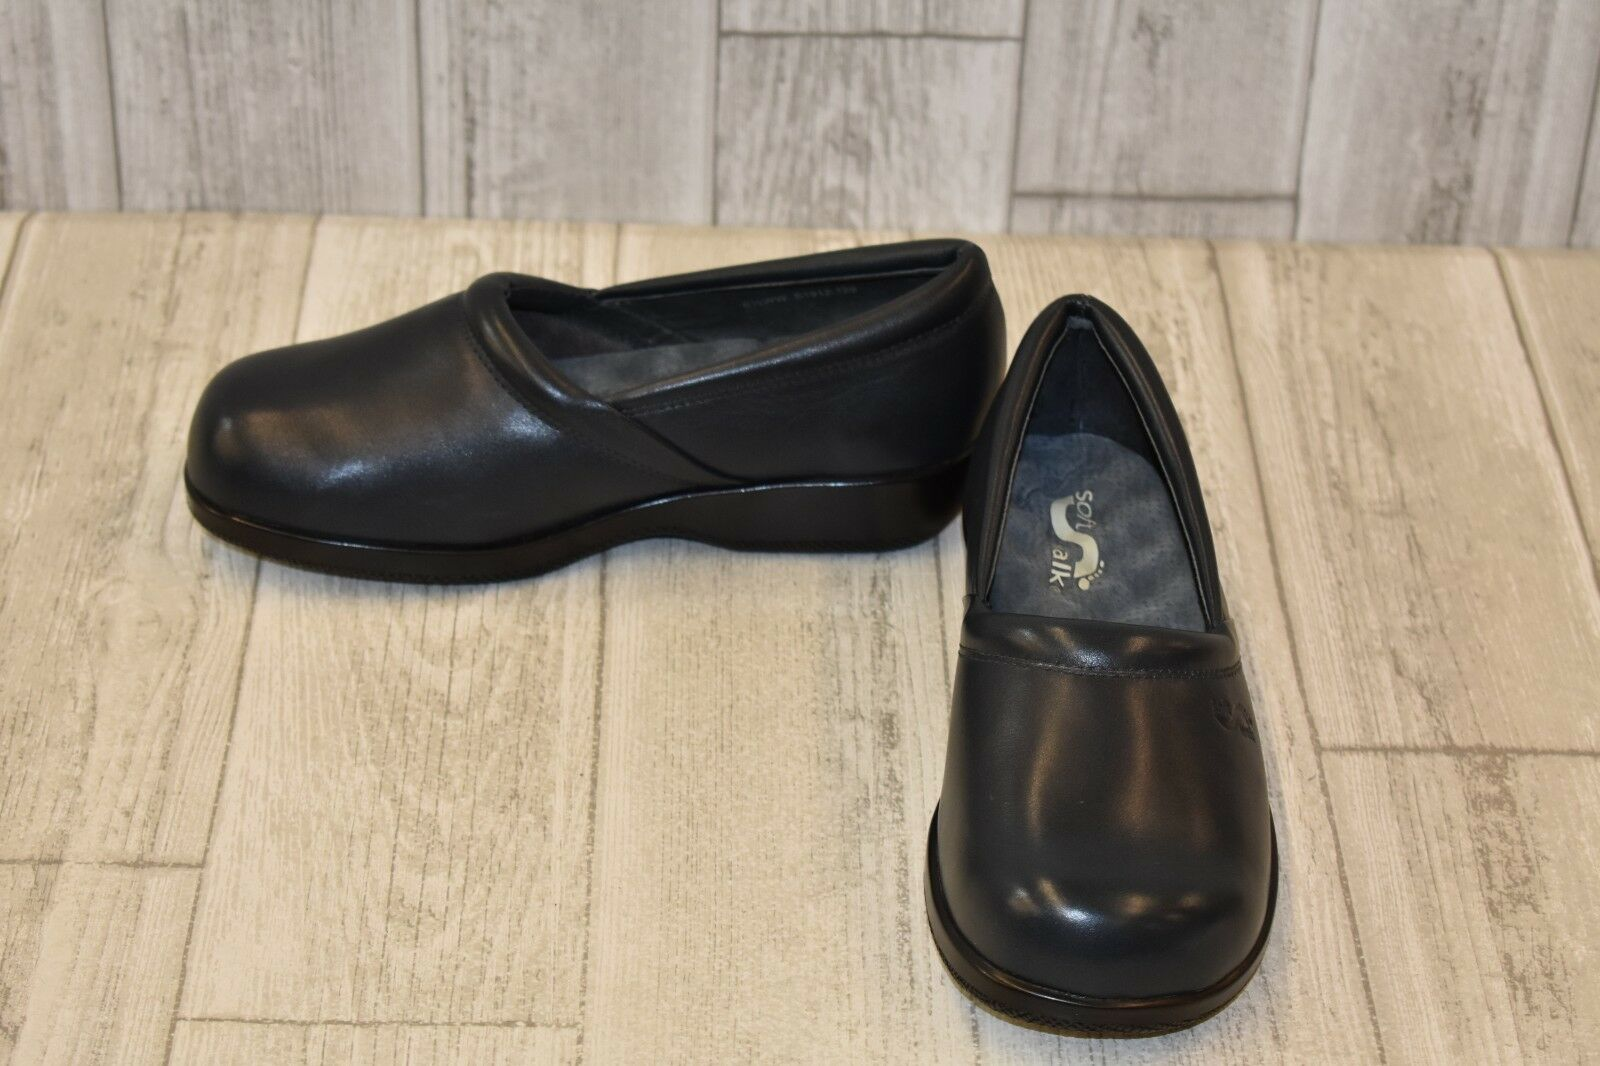 Soft Walk Adora Slip On Clog - Women's Size 6.5WW Dark Navy